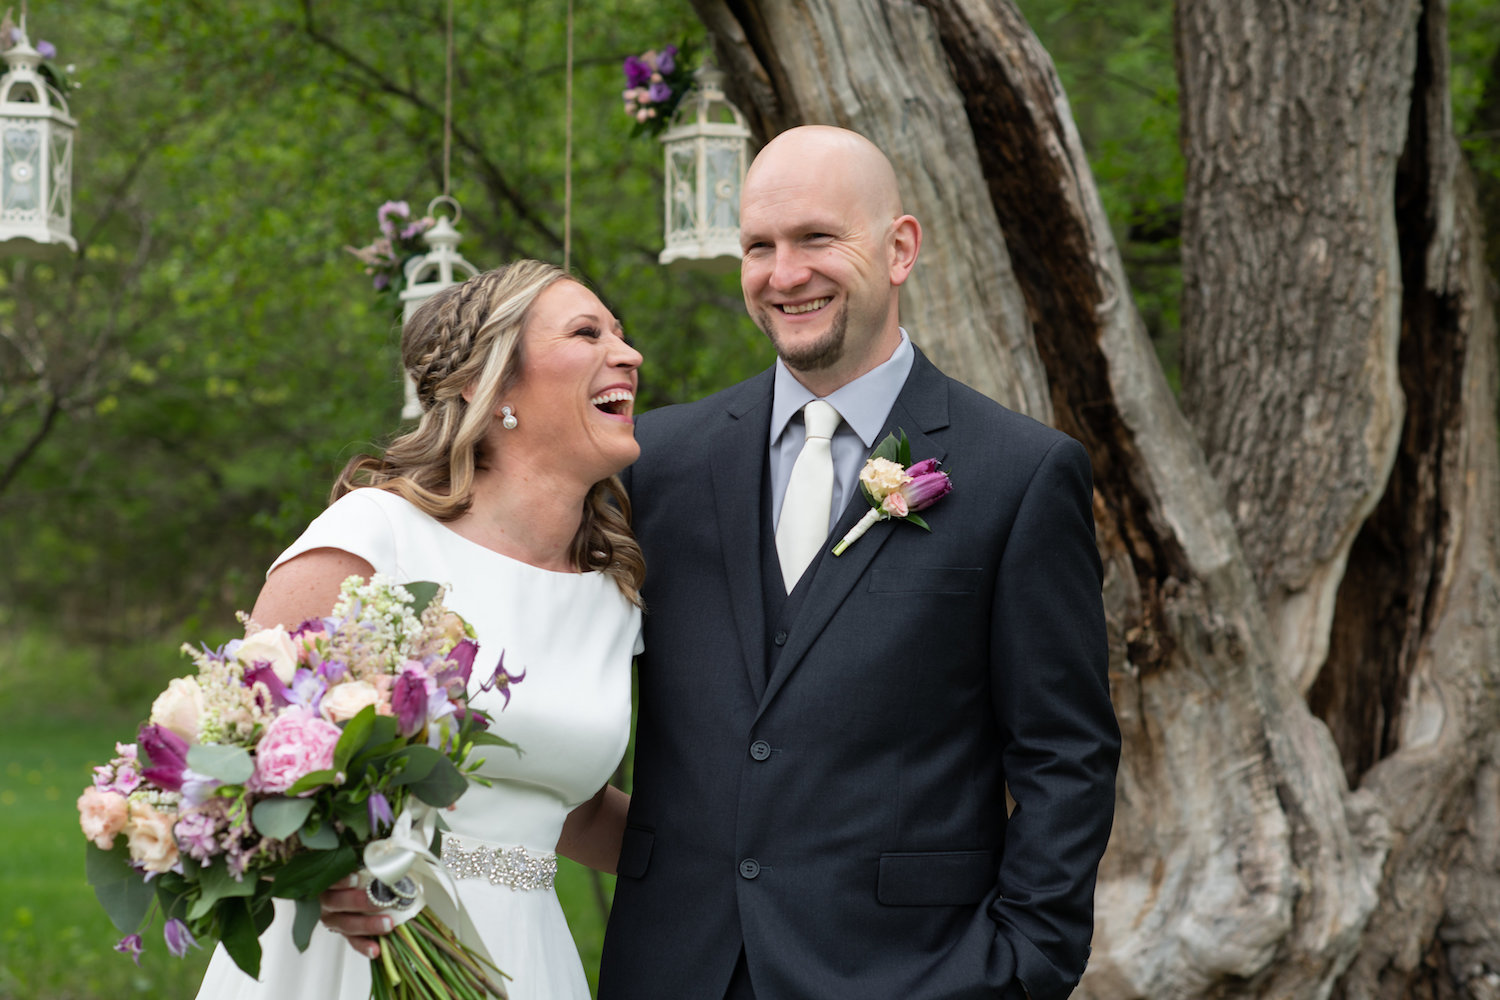 Sarah and Mark | Hope Glen Farm | Kelly Birch Photo | Sixpence Events & Planning wedding planning in Minnesota | happy bride